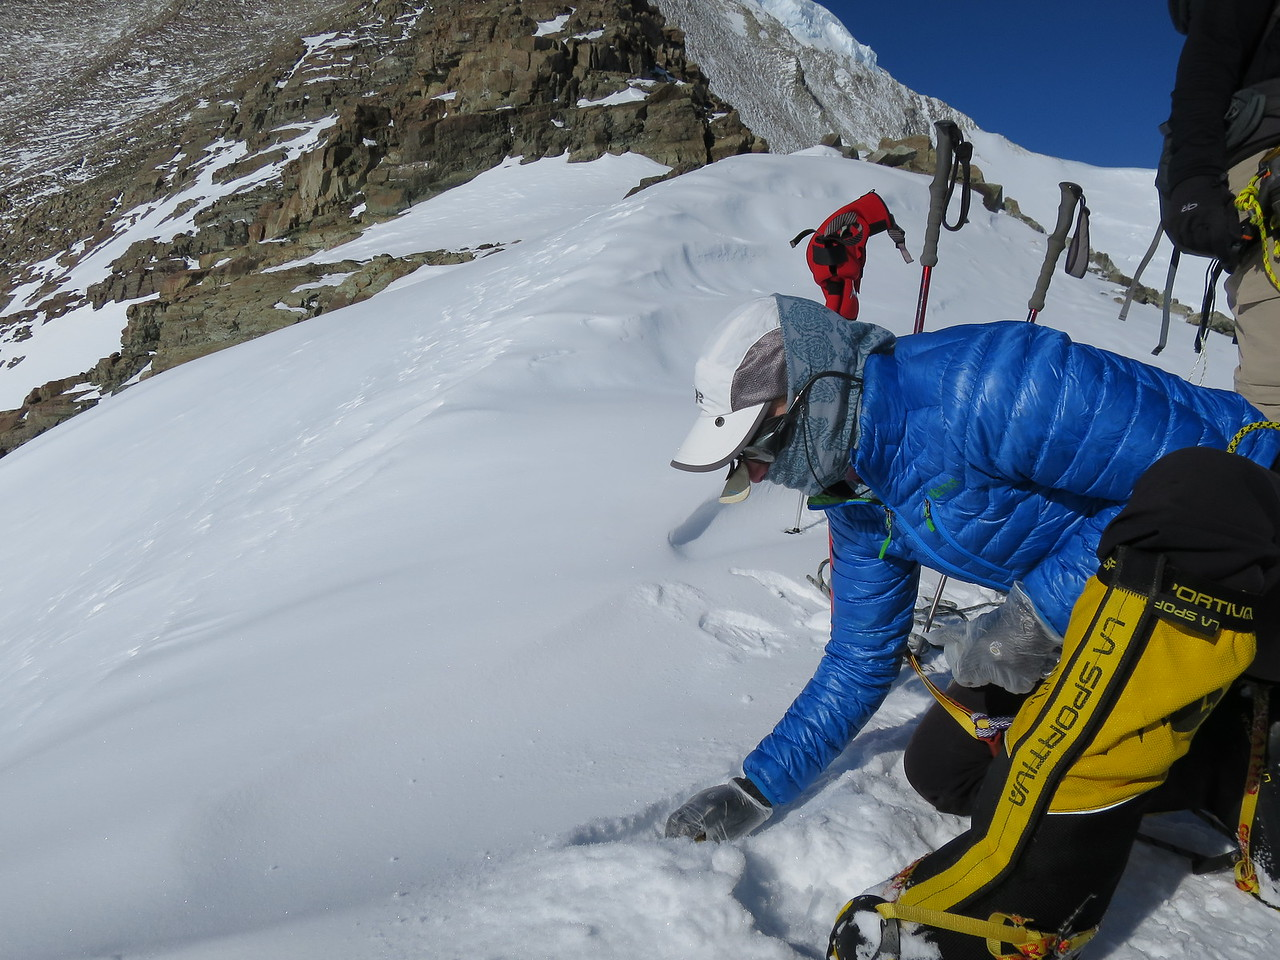 Lisa White collects samples for the ASC Snow and Ice project on Mount Vinson, Antarctica.